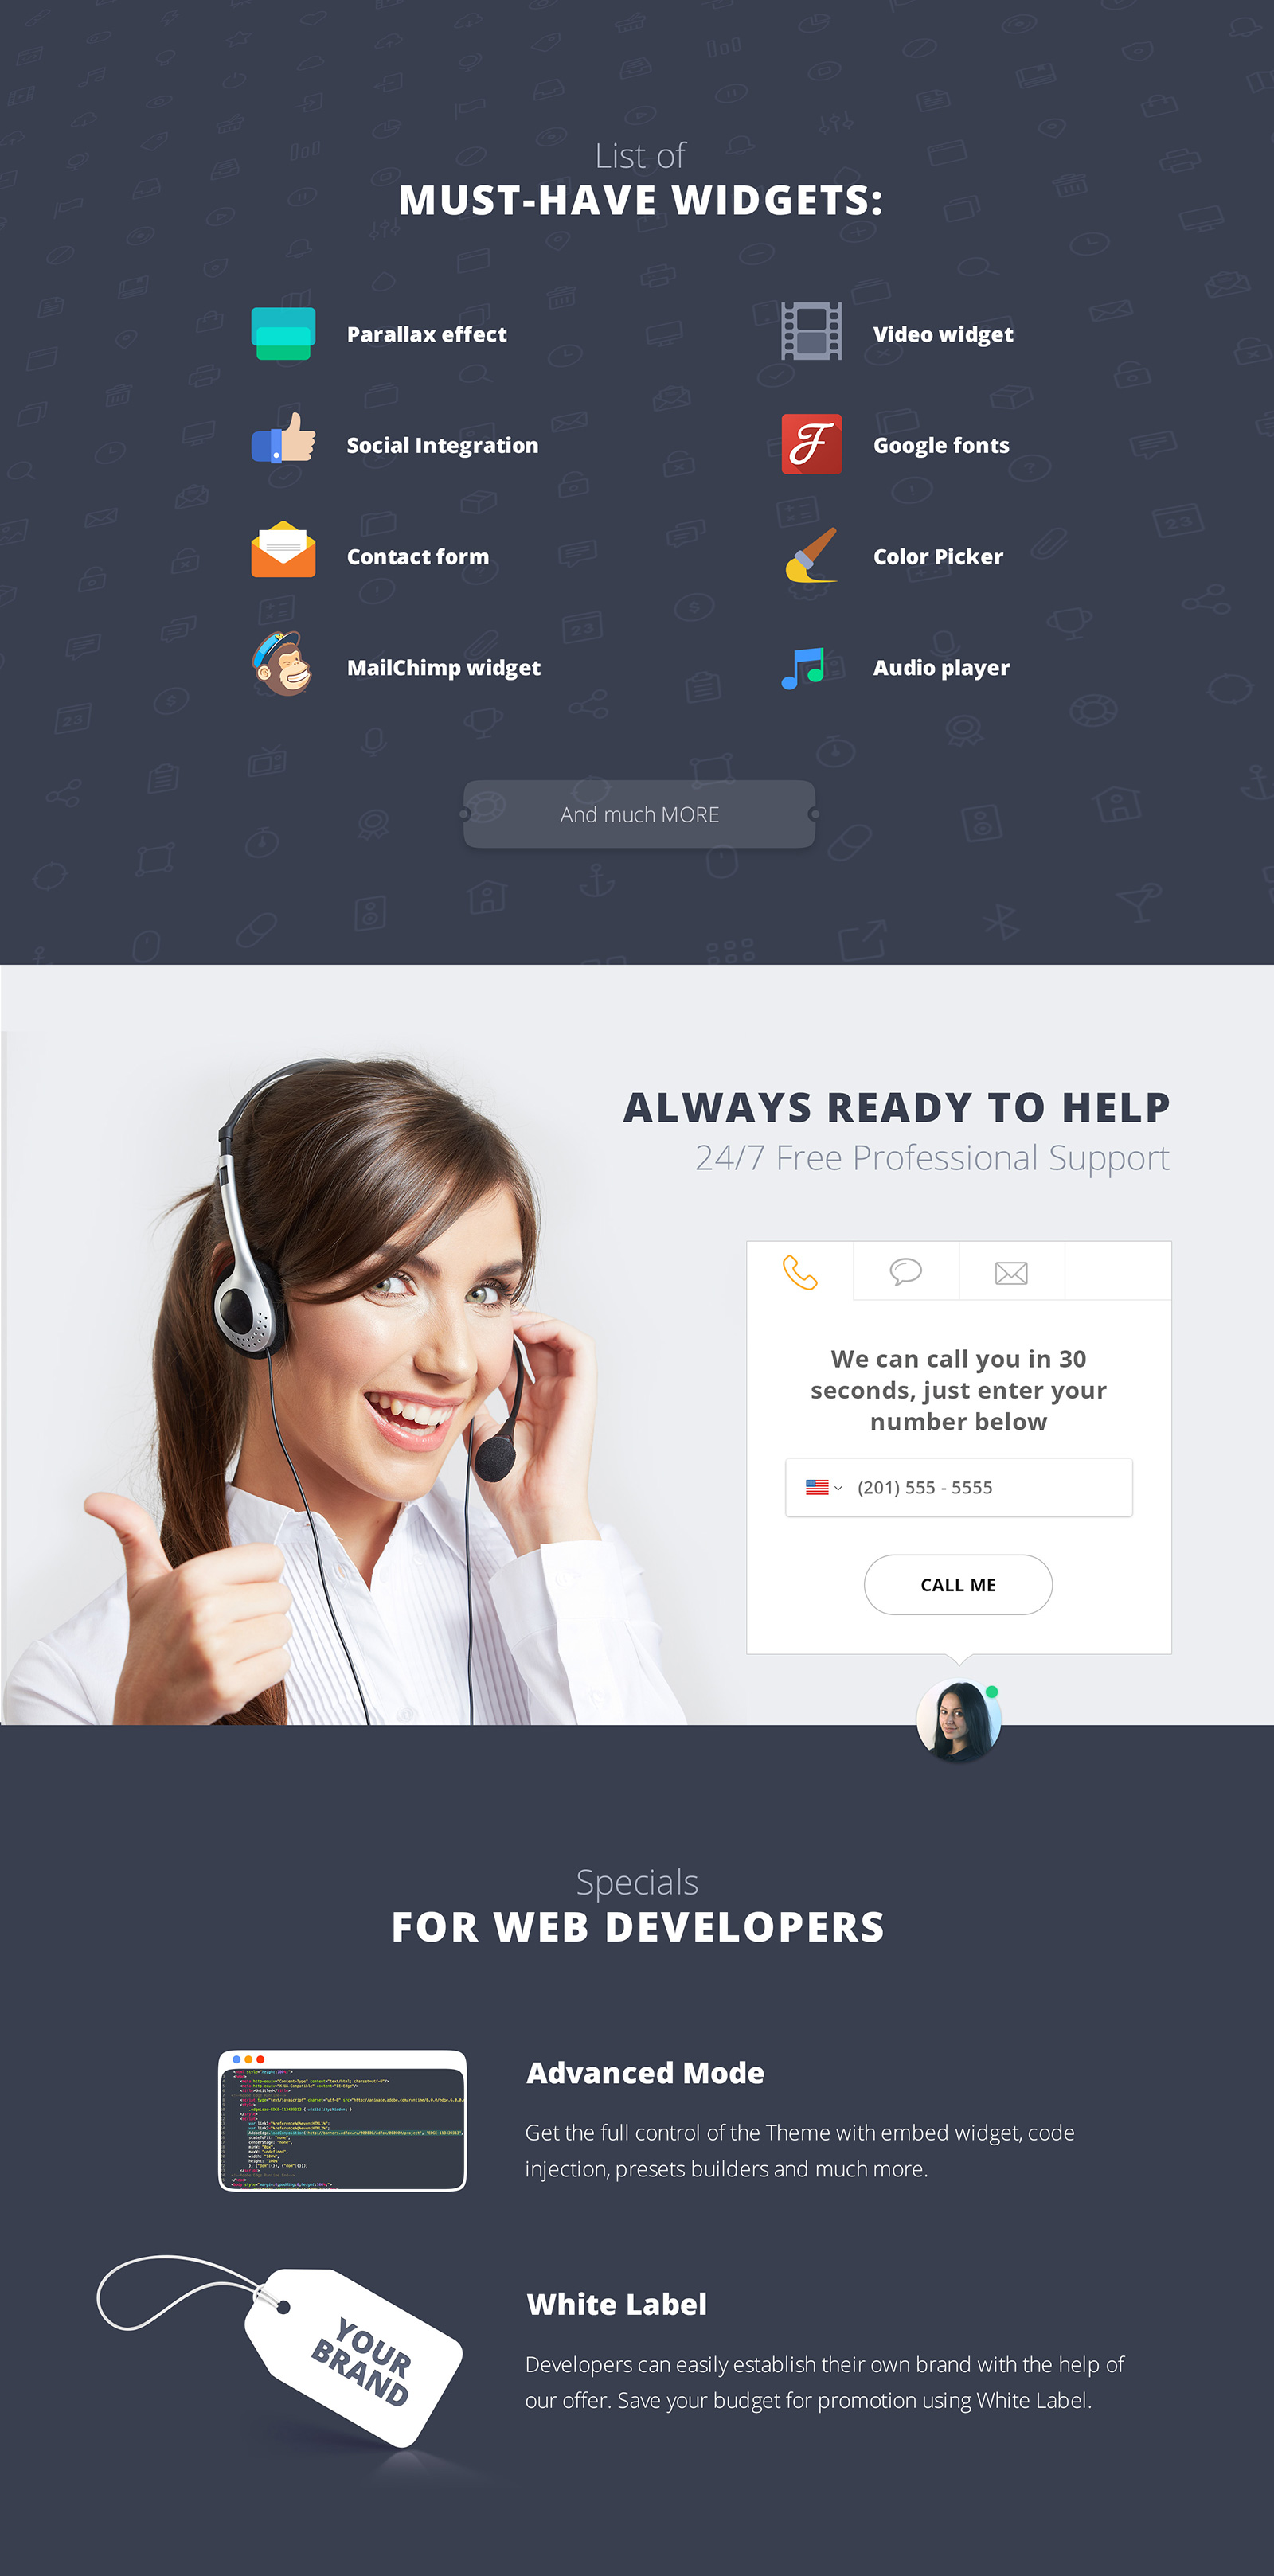 Your Watch - Product Launch Landing Page Template